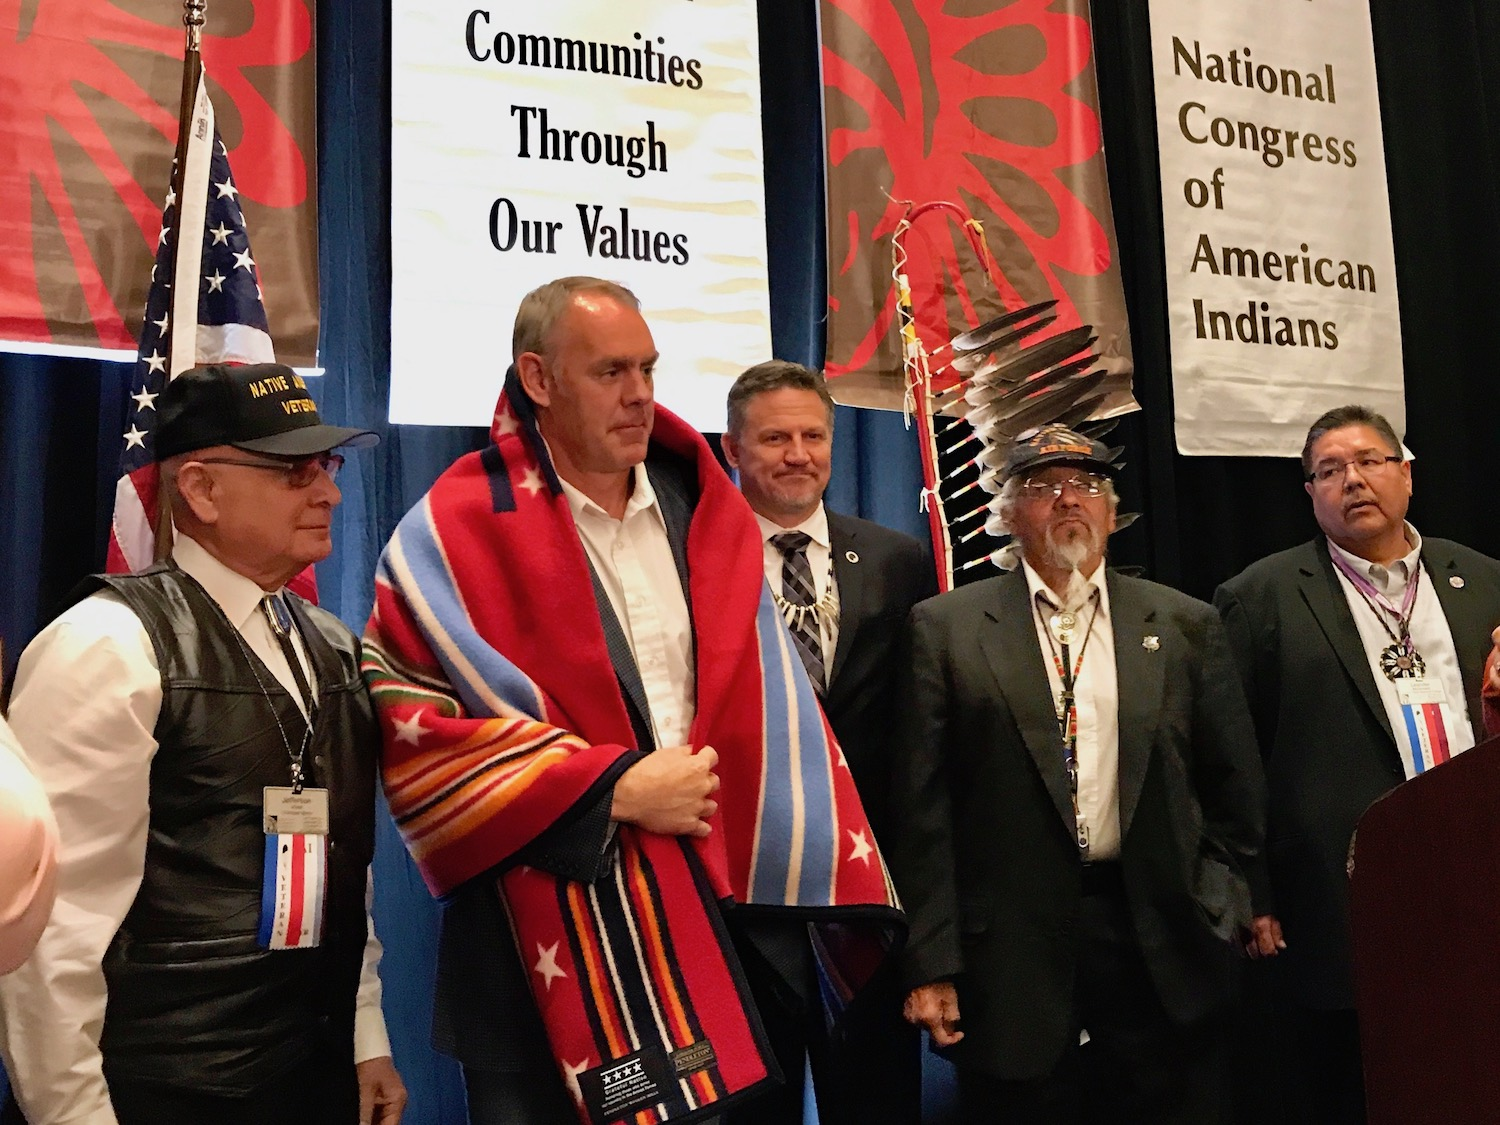 National Congress of American Indians welcomes Secretary Zinke again